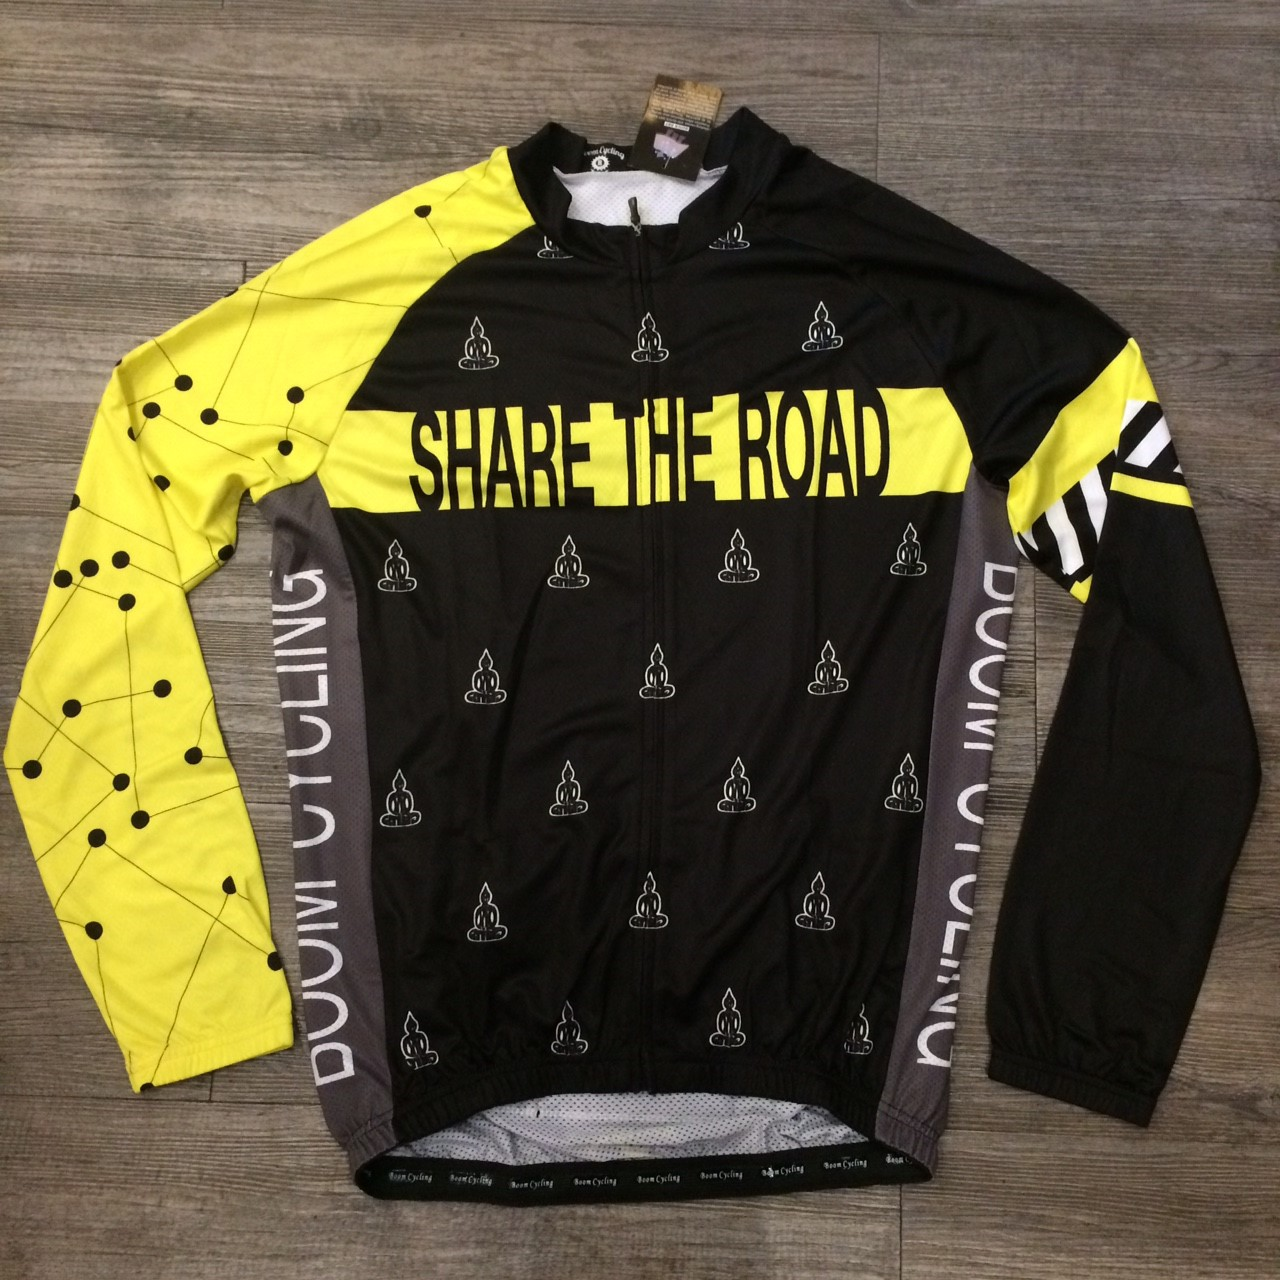 "BCL-196 SHARE THE ROAD 2XL"" (แขนยาว)"